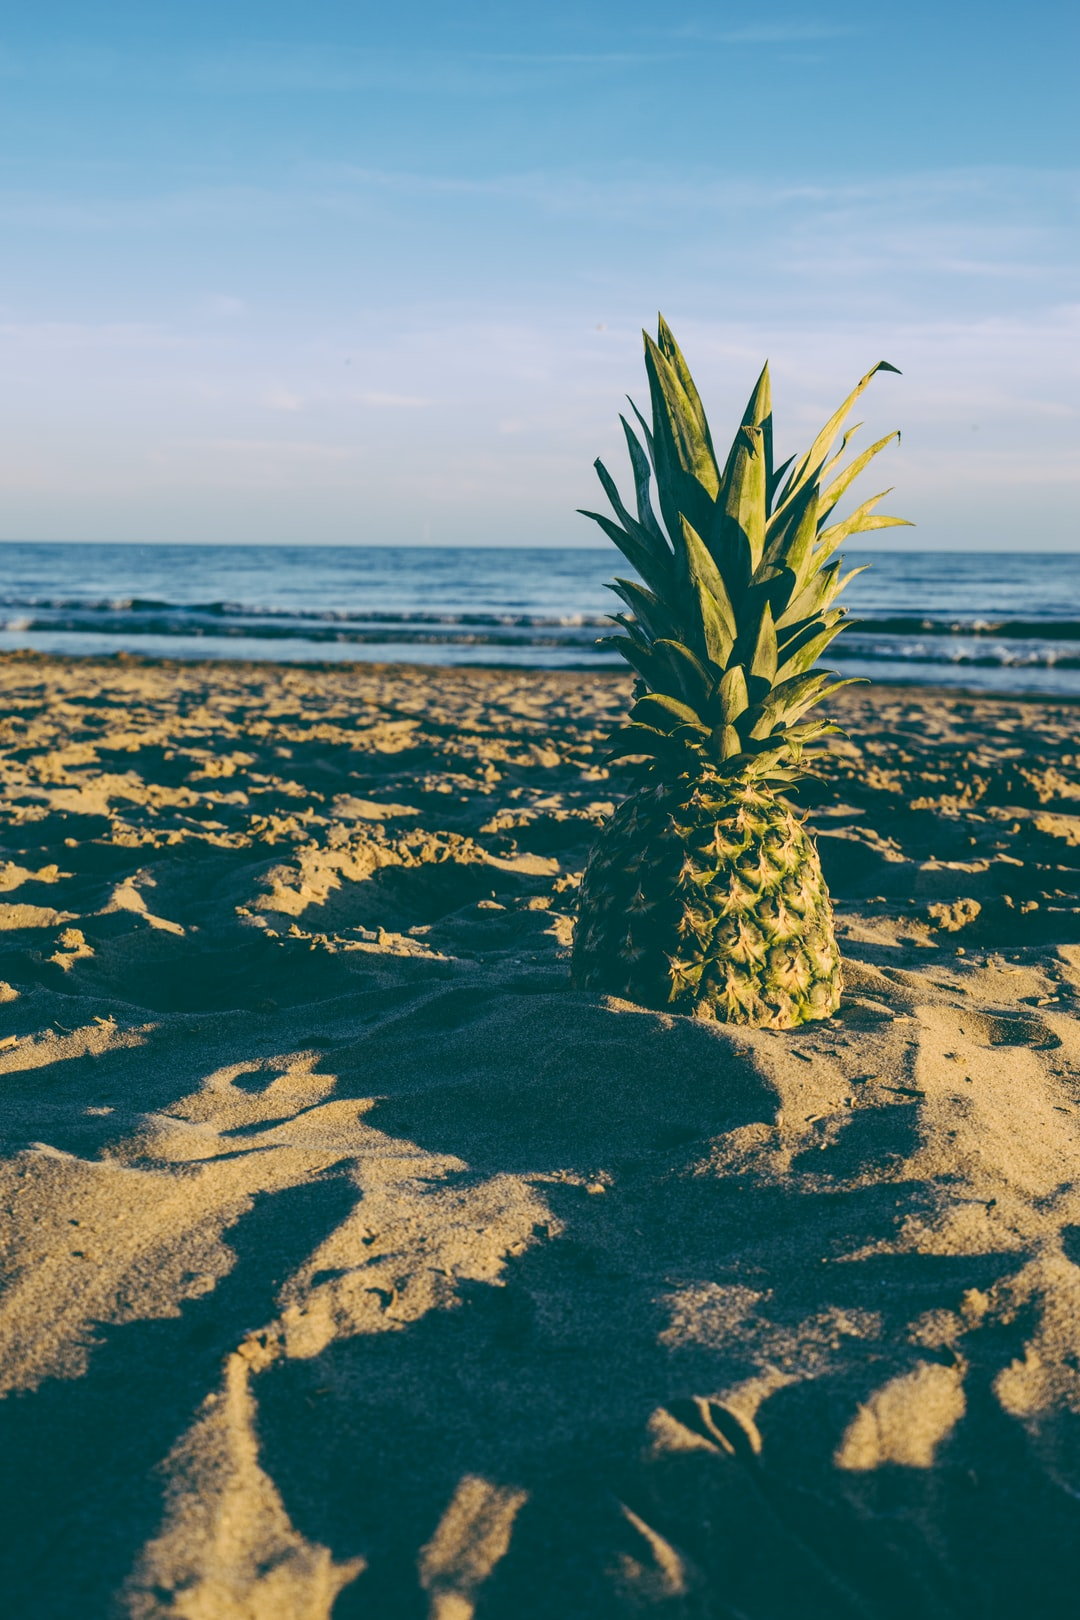 free pineapple image from the beach